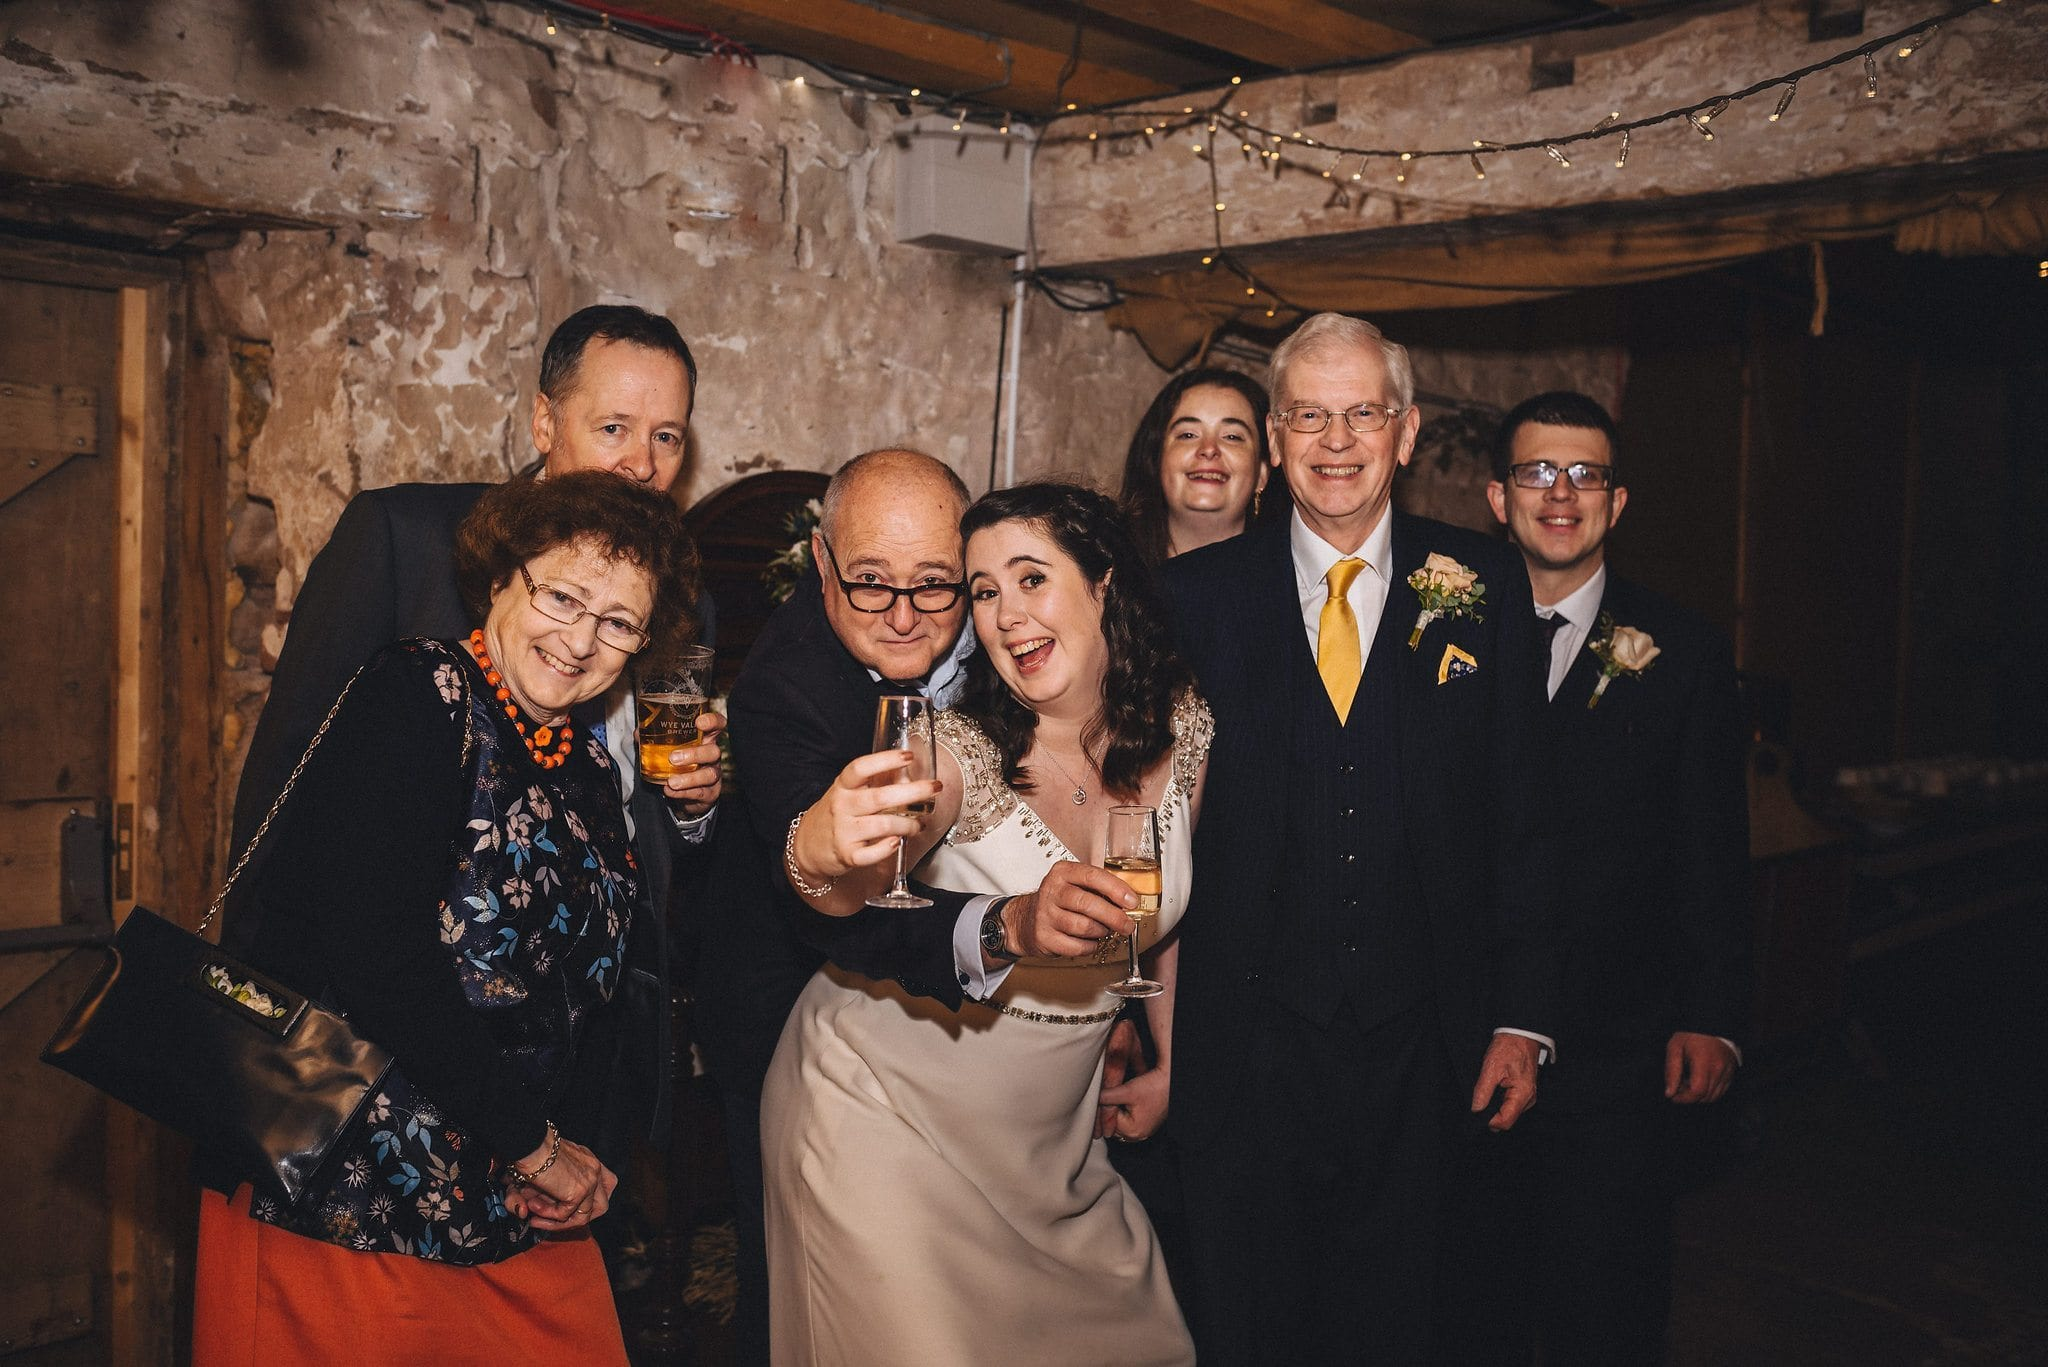 Bride poses with her family holding glasses of champagne